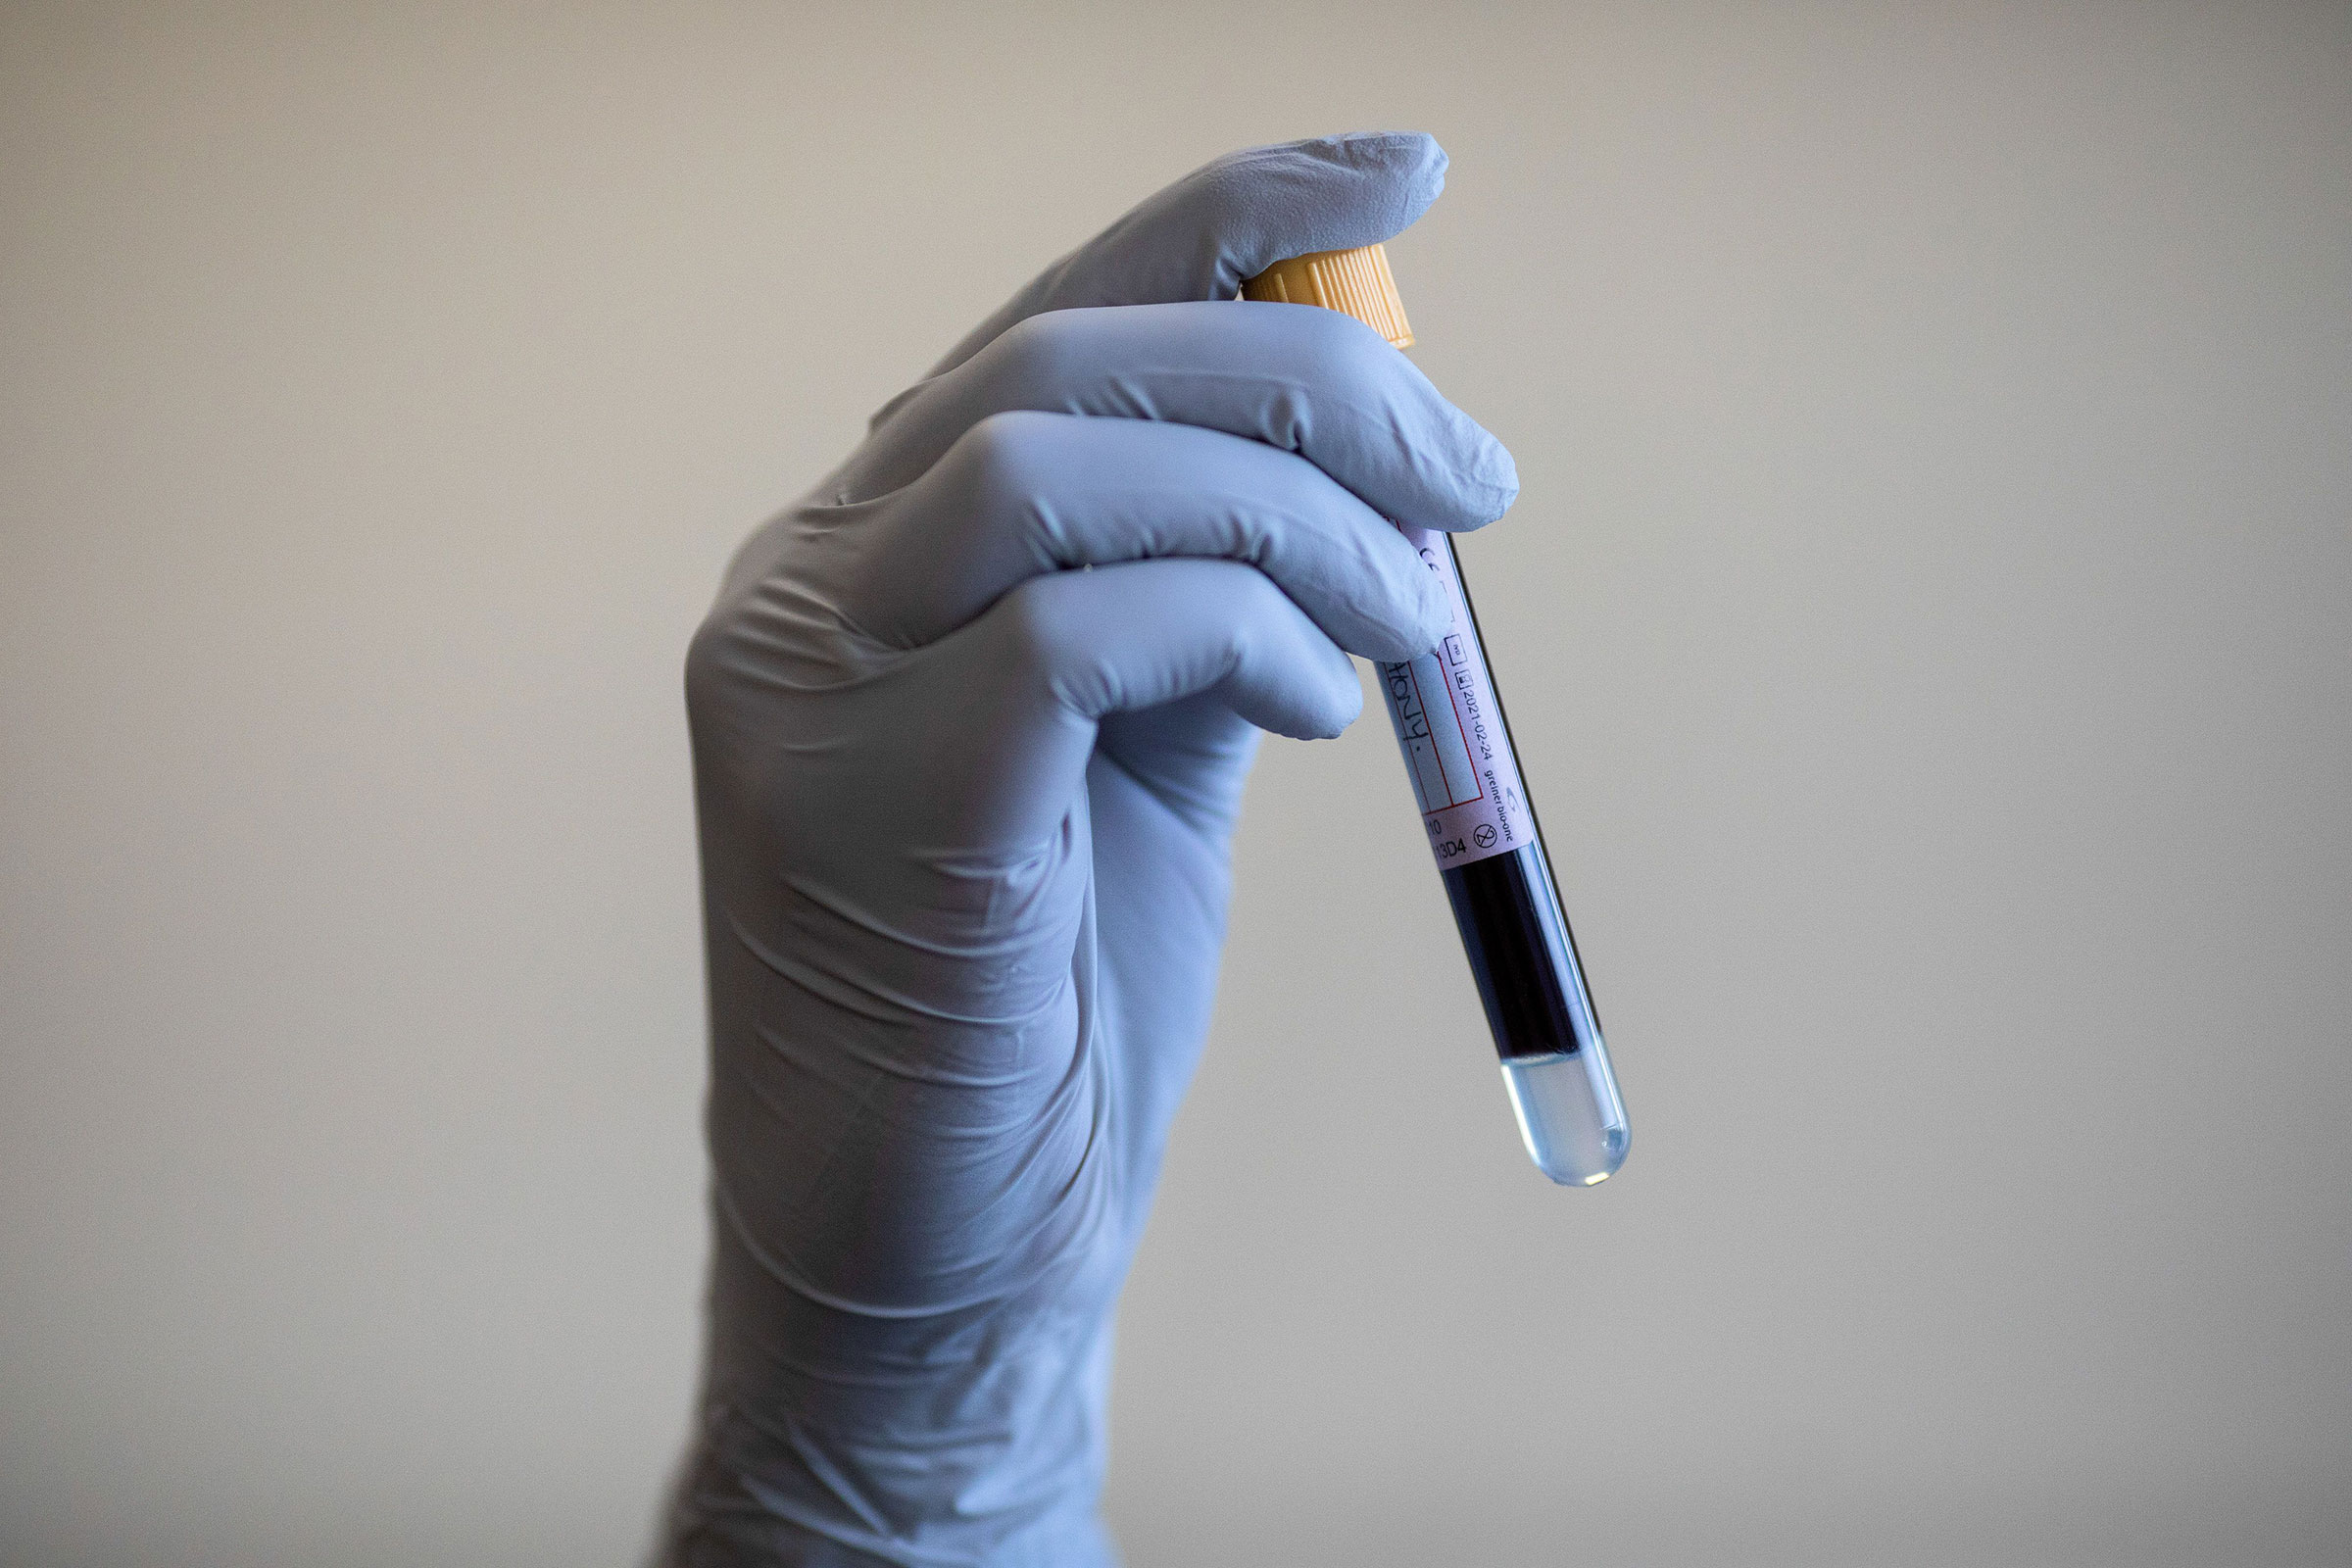 A blood sample is held during an antibody testing program at the Hollymore Ambulance Hub of the West Midlands Ambulance Service in Birmingham, Britain, on June 5, 2020.